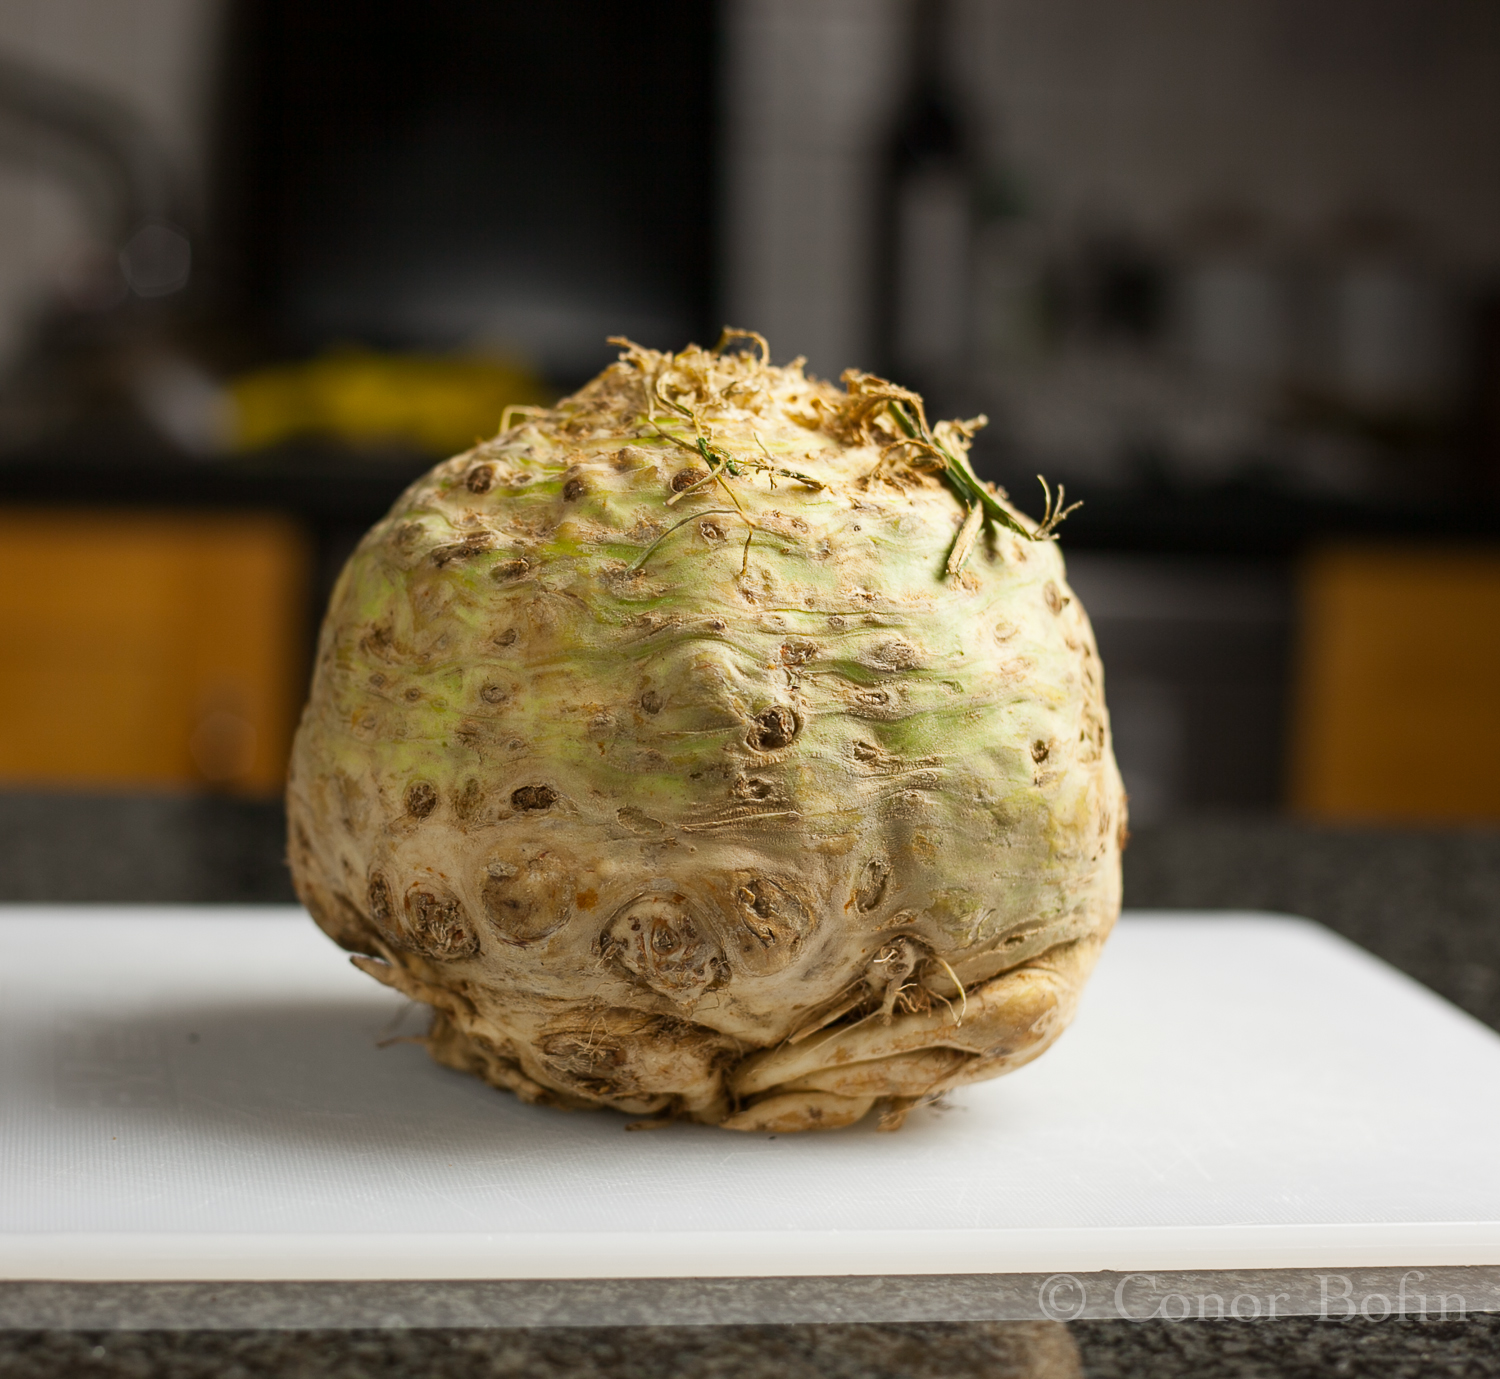 The celeriac is one ugly vegetable. It tastes great though.